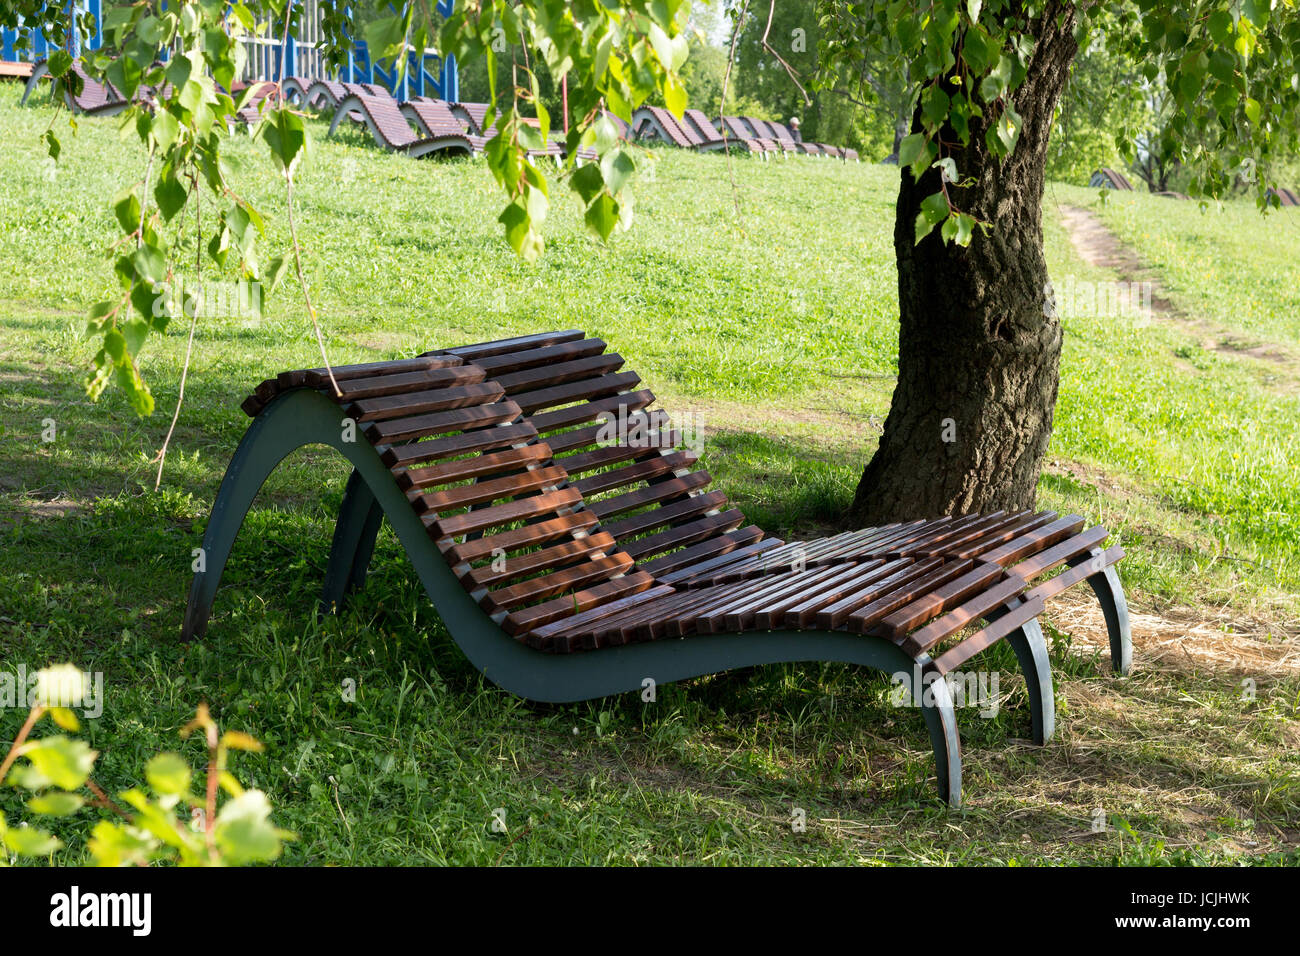 Recreation area in the park, wooden chaise lounges under a shady tree in a park on the river bank - Stock Image